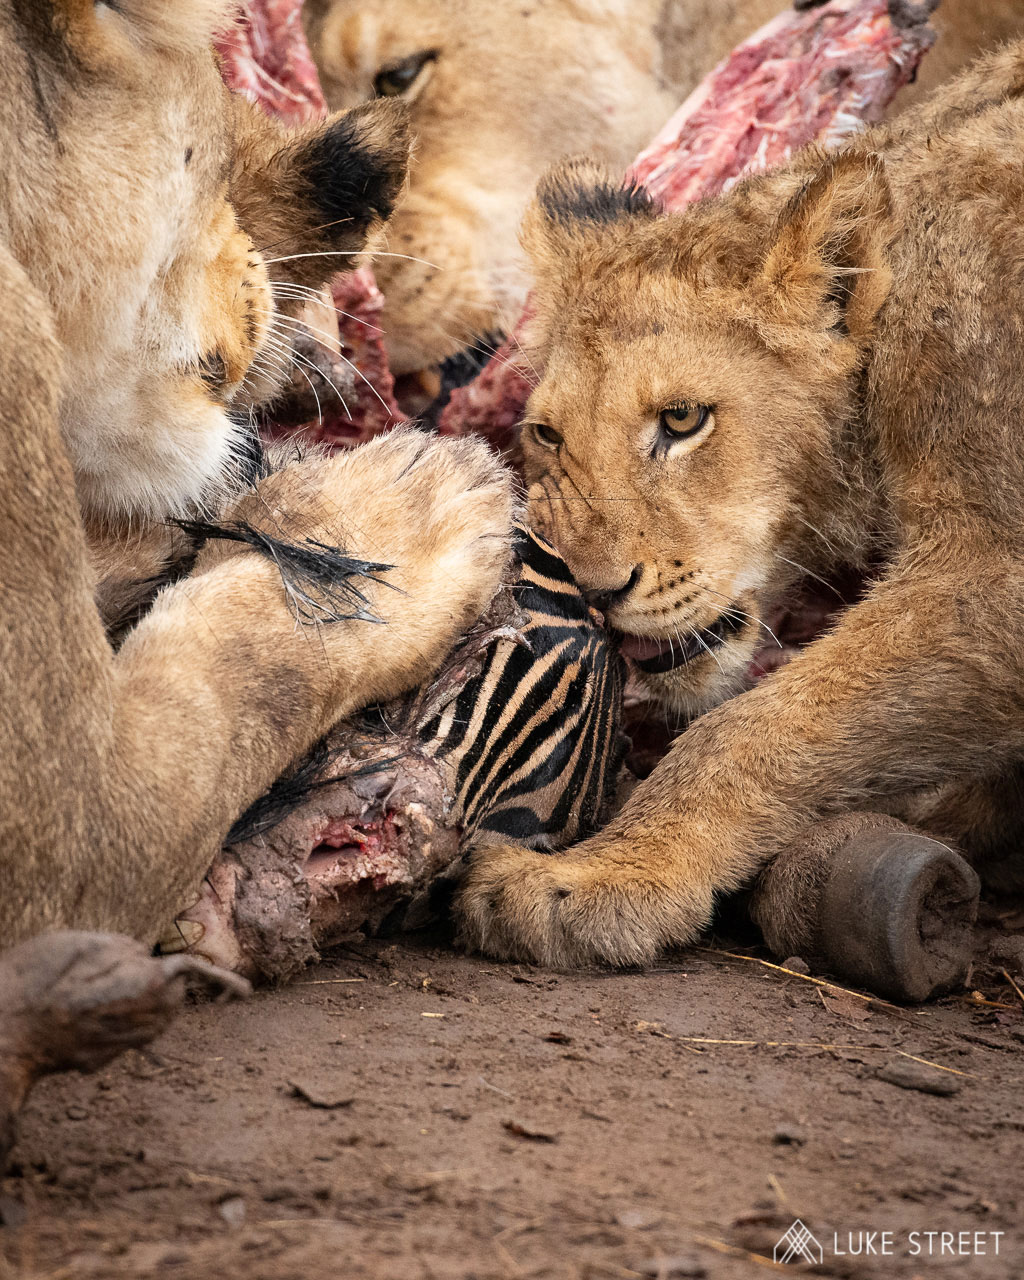 Tanda Tula - lions feasting on a zebra in the Greater Kruger